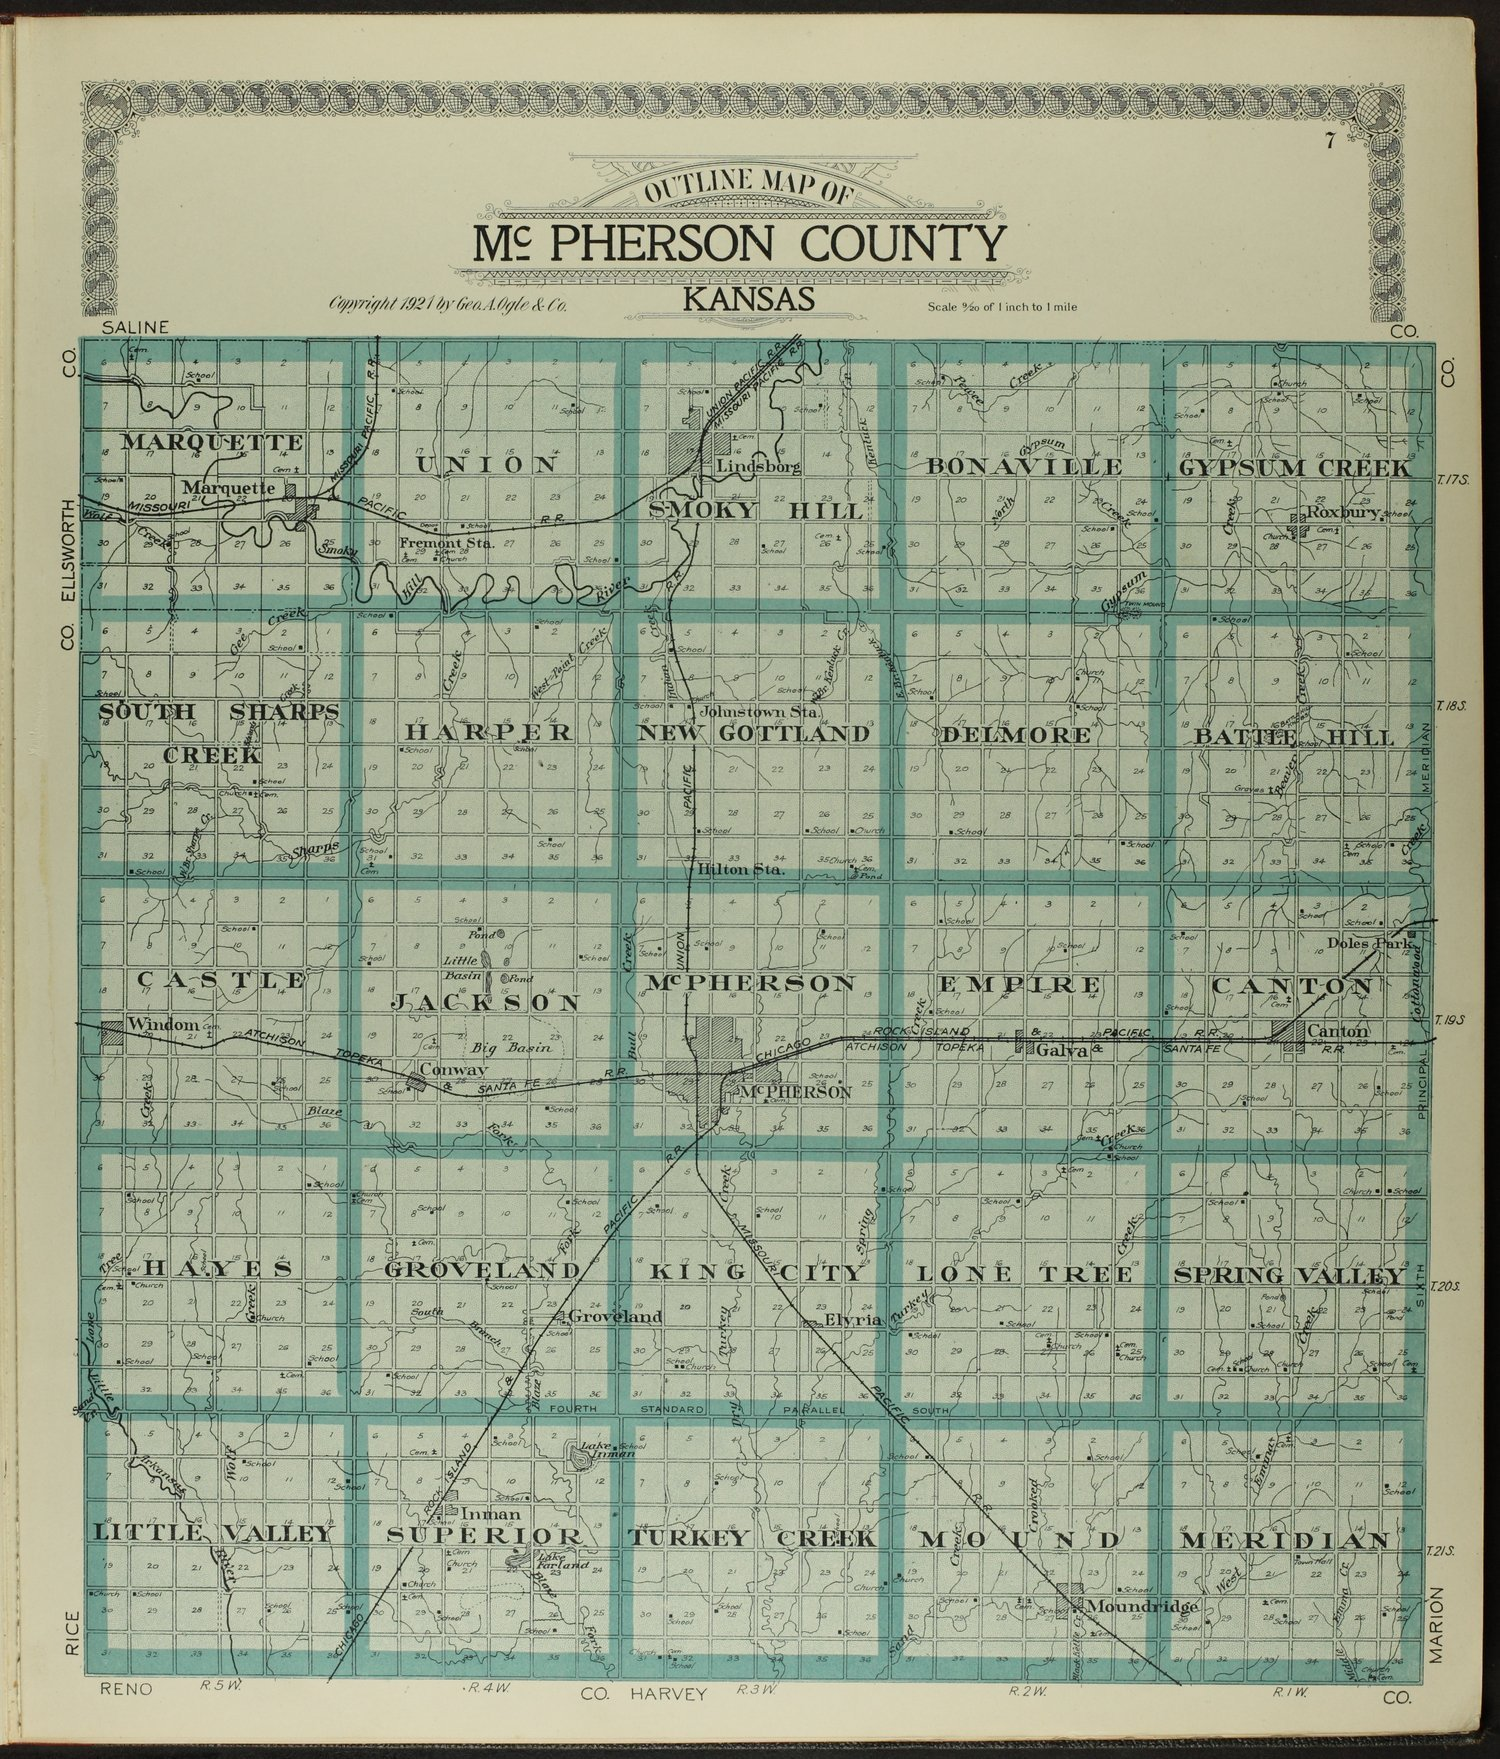 Standard atlas of McPherson County, Kansas - 7